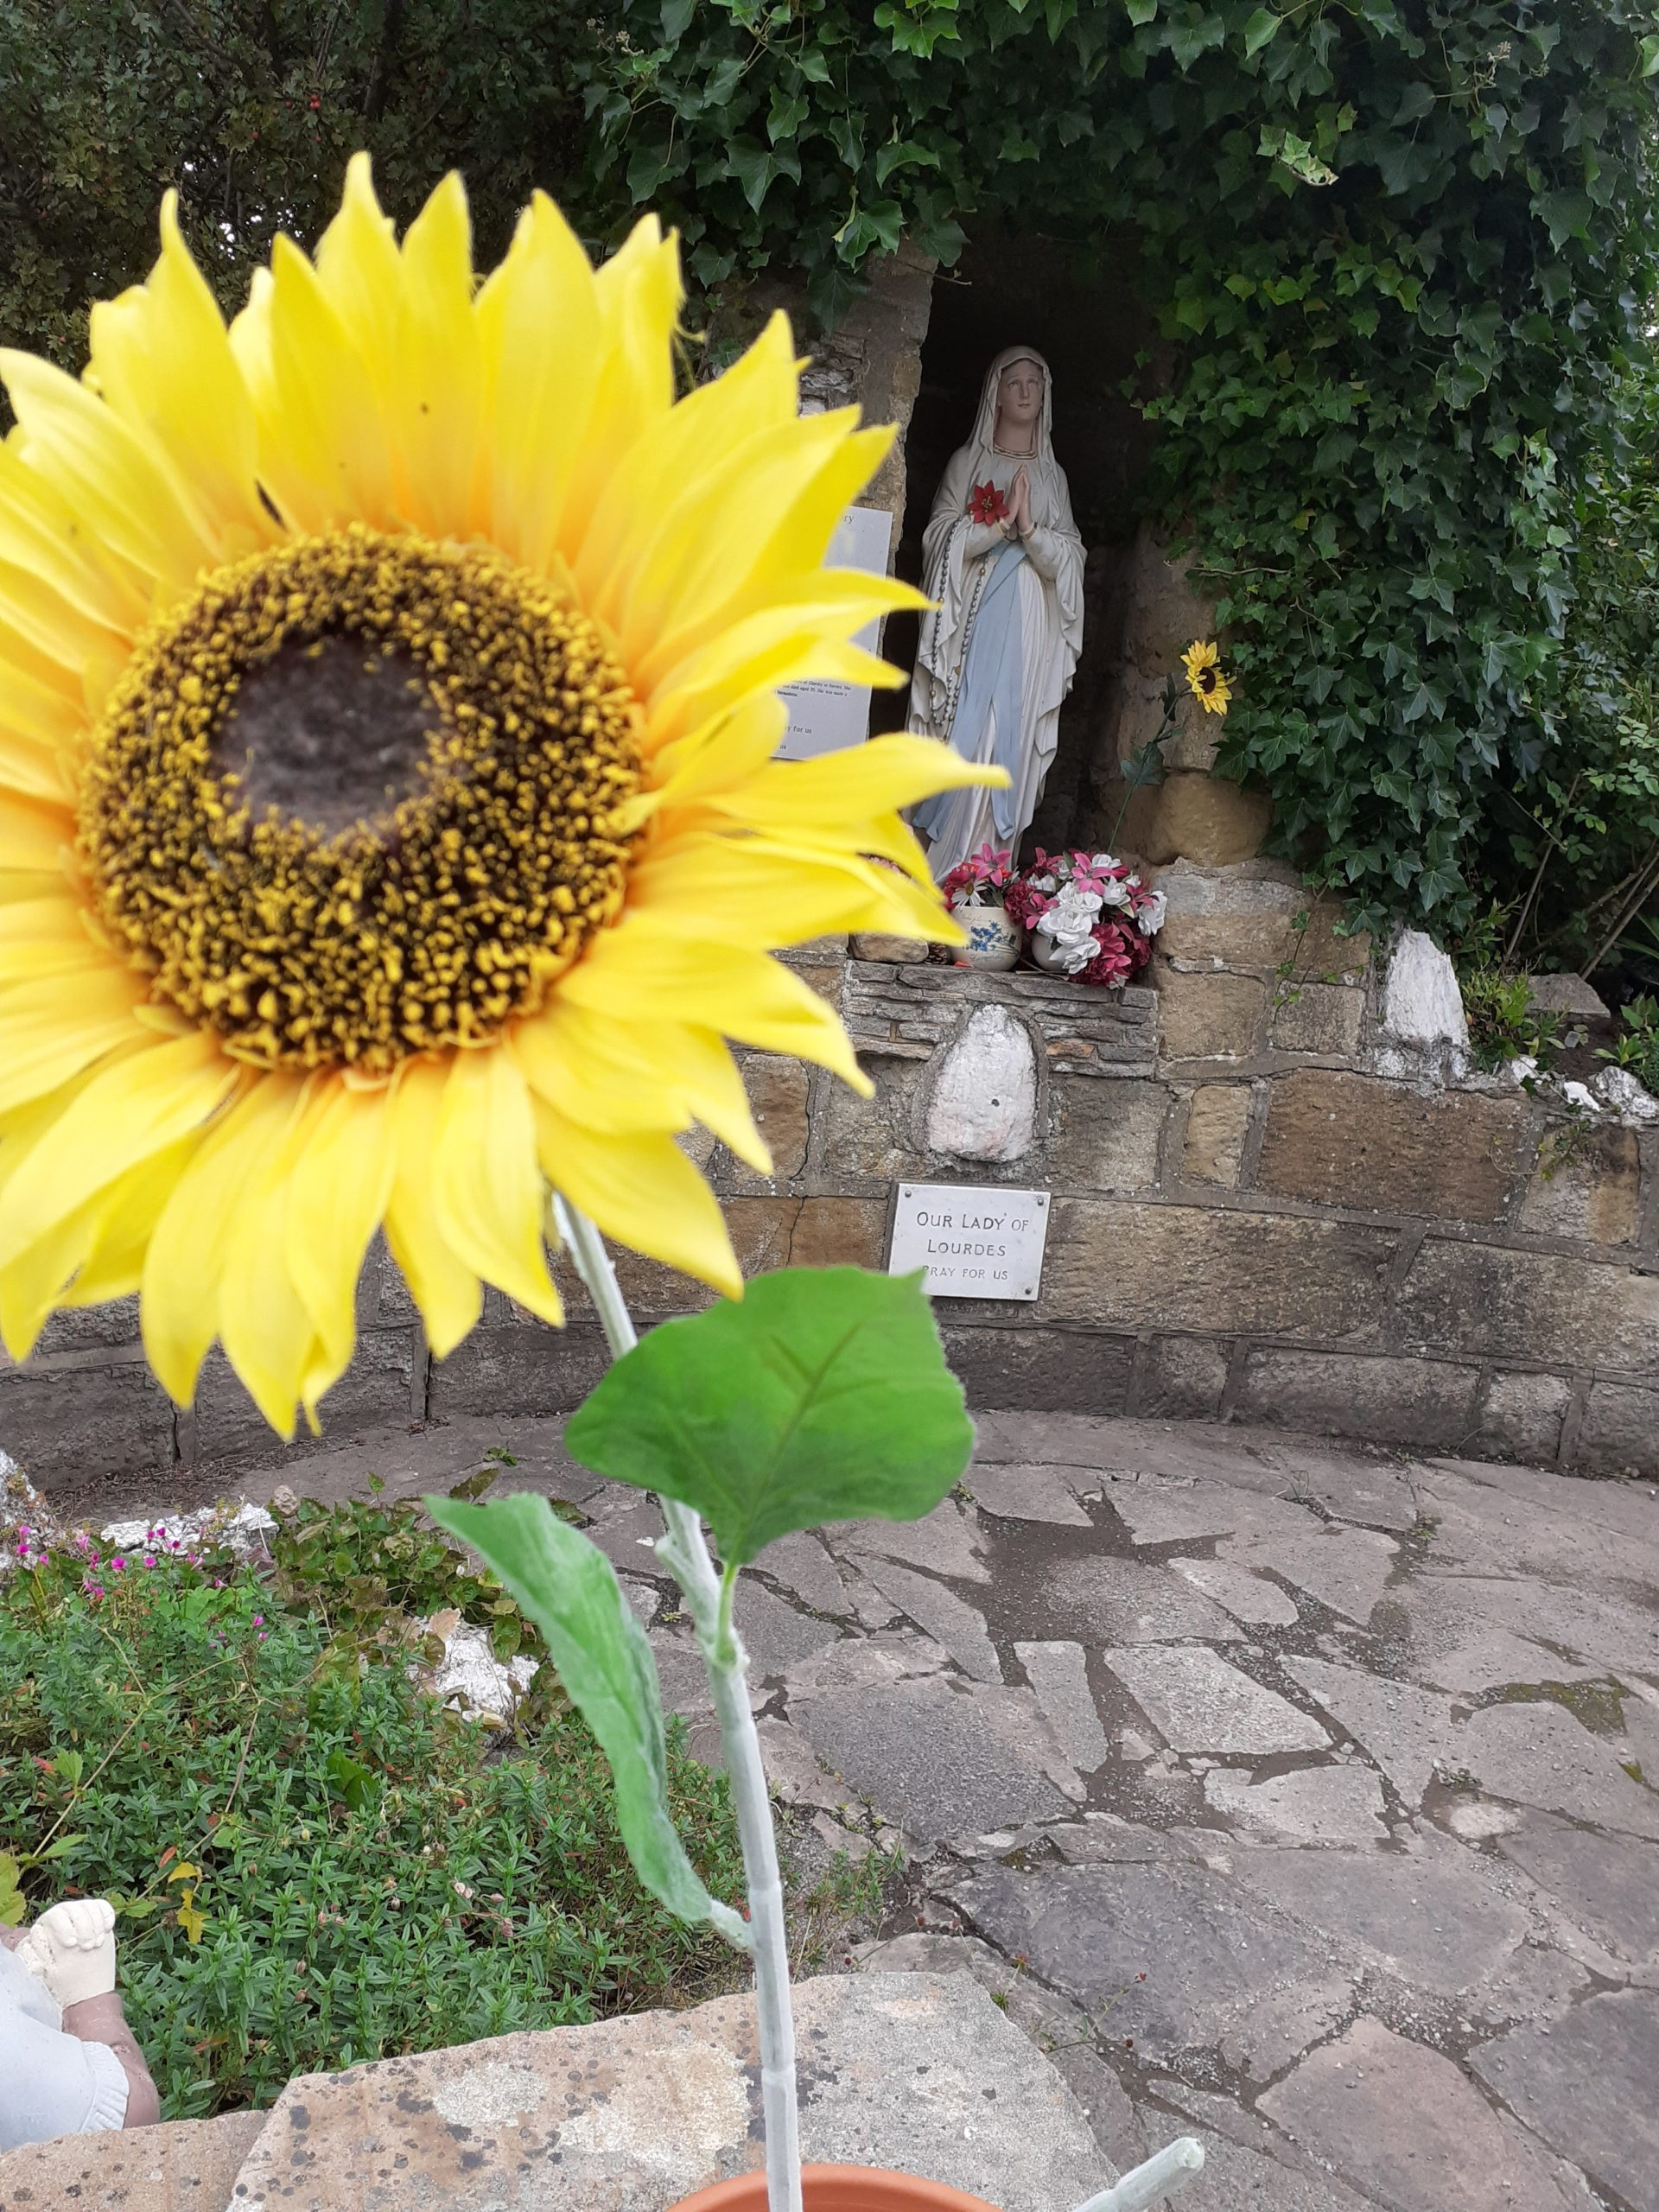 Artificial sunflowers dominate the grotto at Our Lady of Lourdes church, Saltburn.